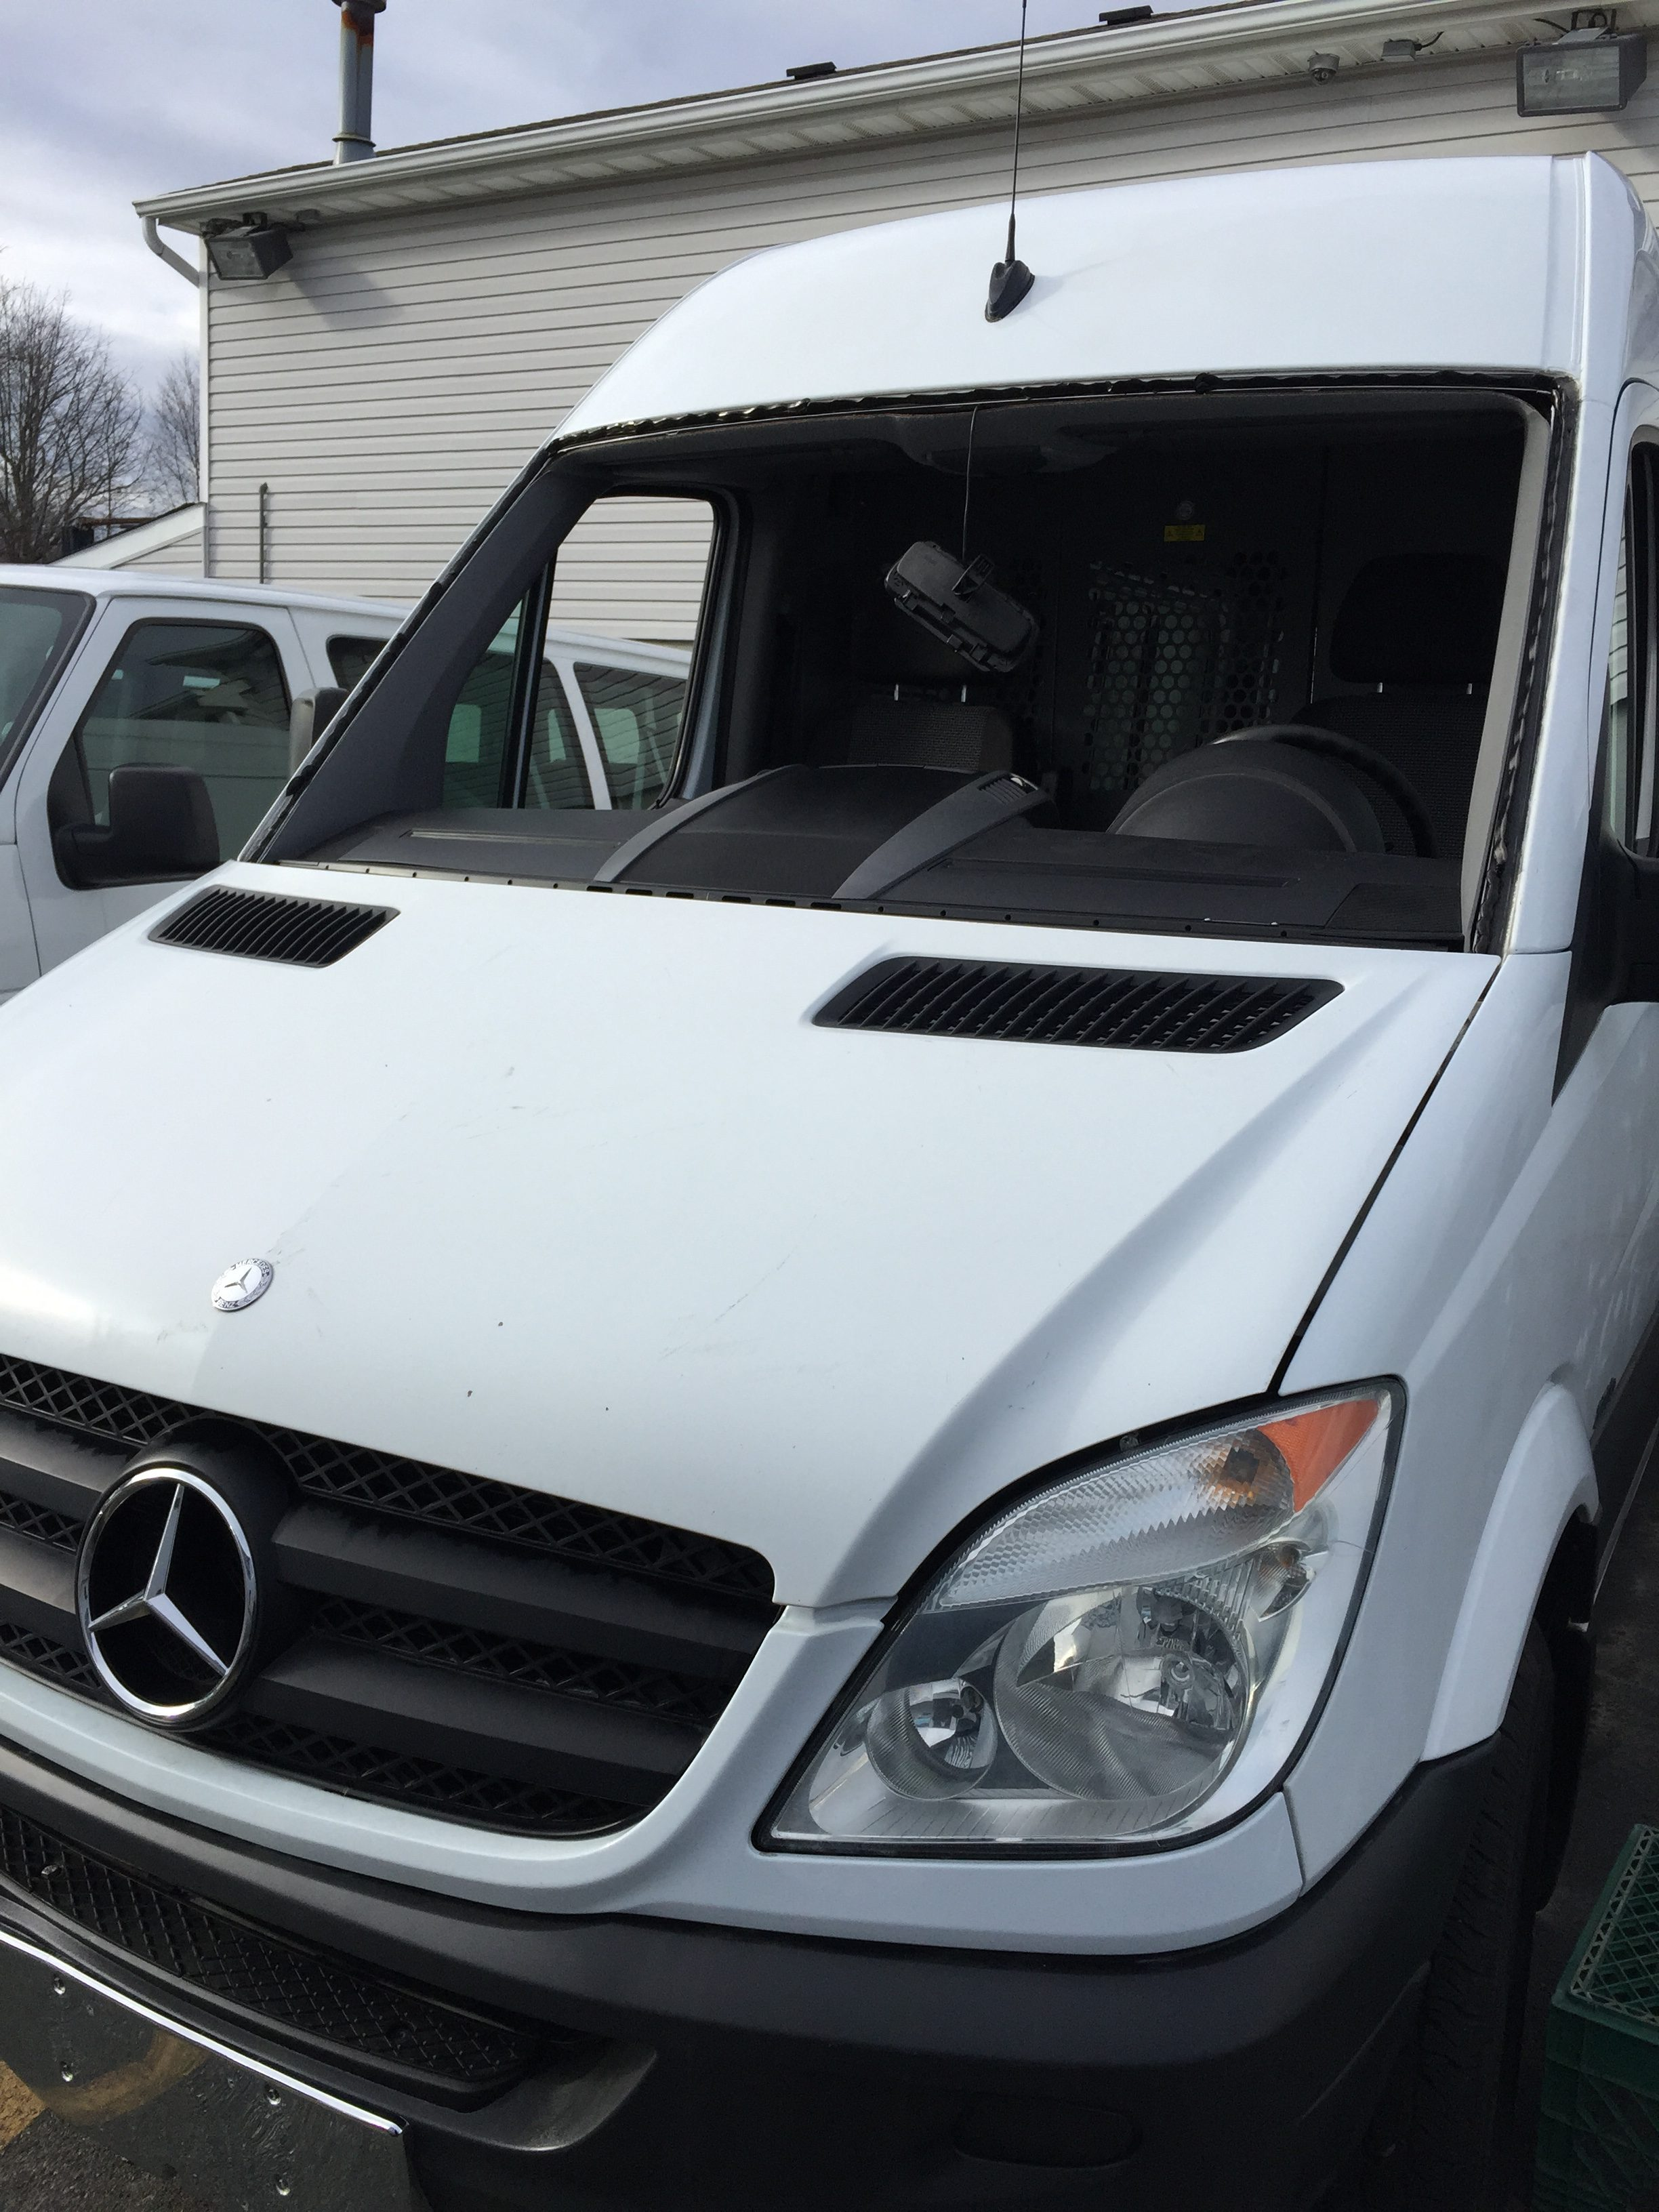 2012 Sprinter Van Mercedes Benz ready for a new windshield Install Platinum Auto Glass NJ @732-993-6844@platinumautoglassnj